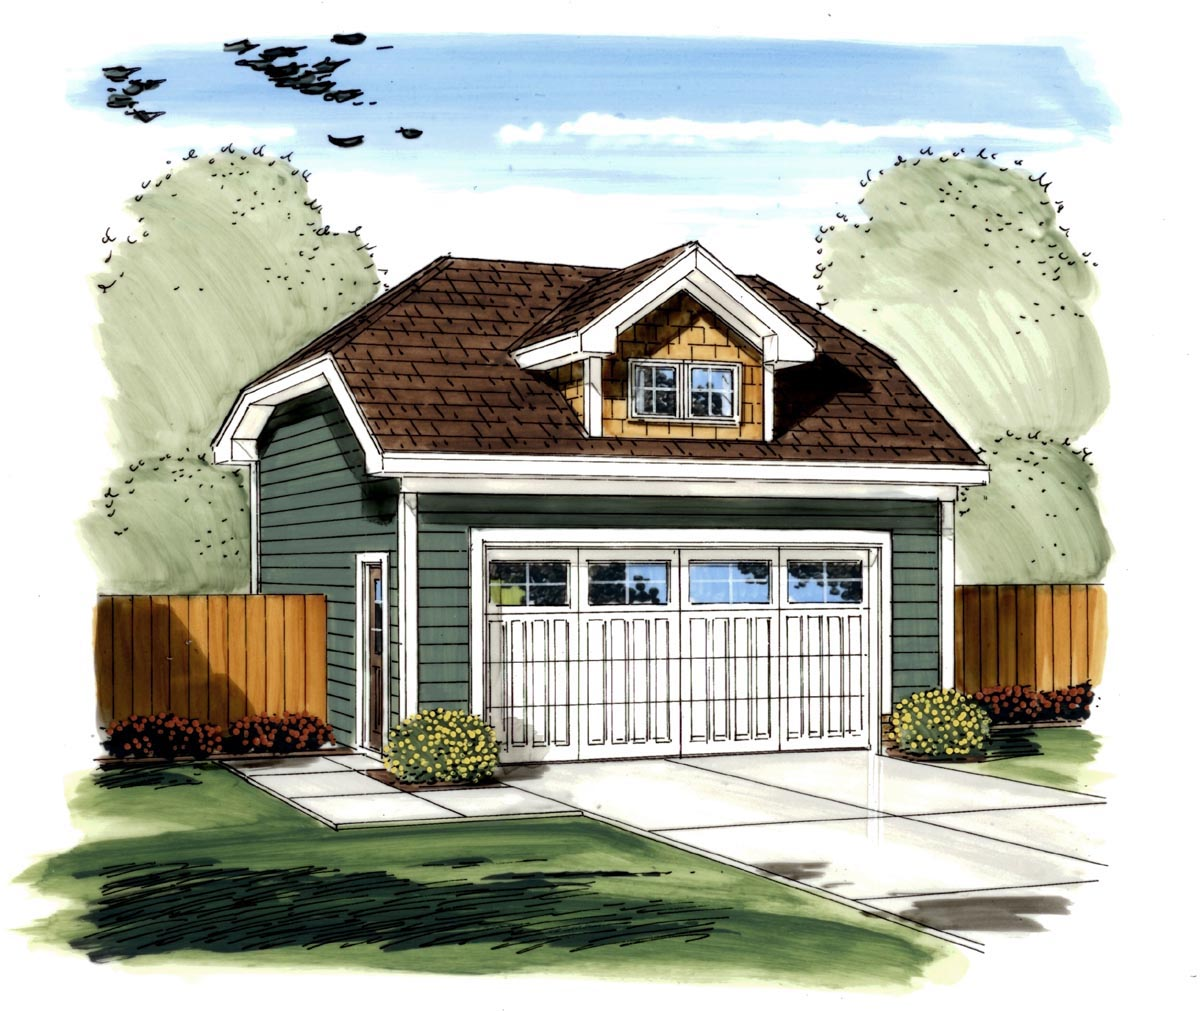 Garage Plan 95826 At Familyhomeplans Com: Garage Plan 44126 At FamilyHomePlans.com